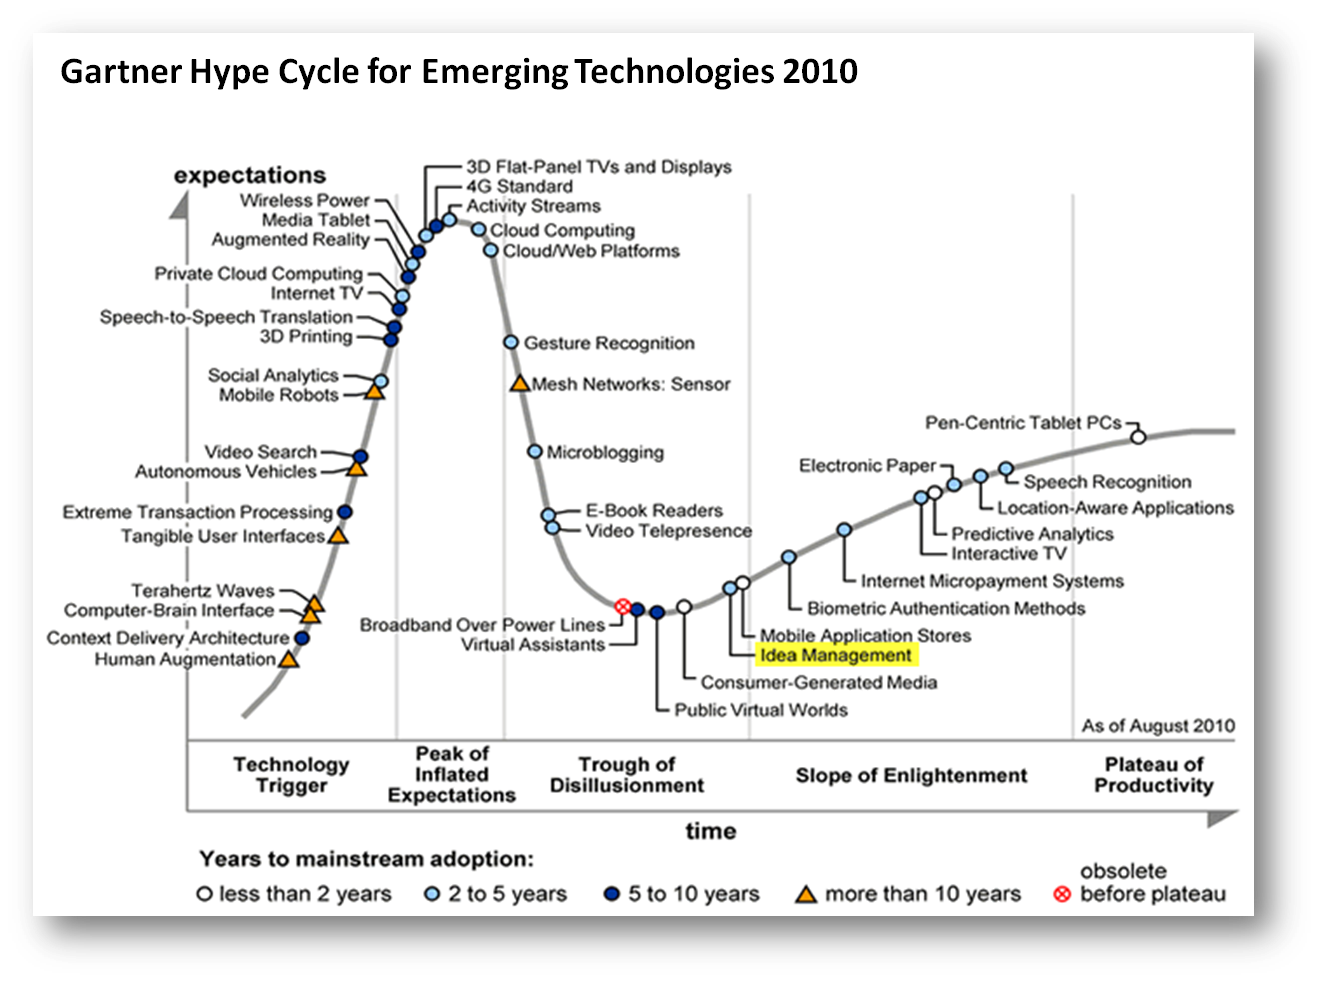 Hype Cycle for Emerging Technologies 2010: The Rise of Idea Management